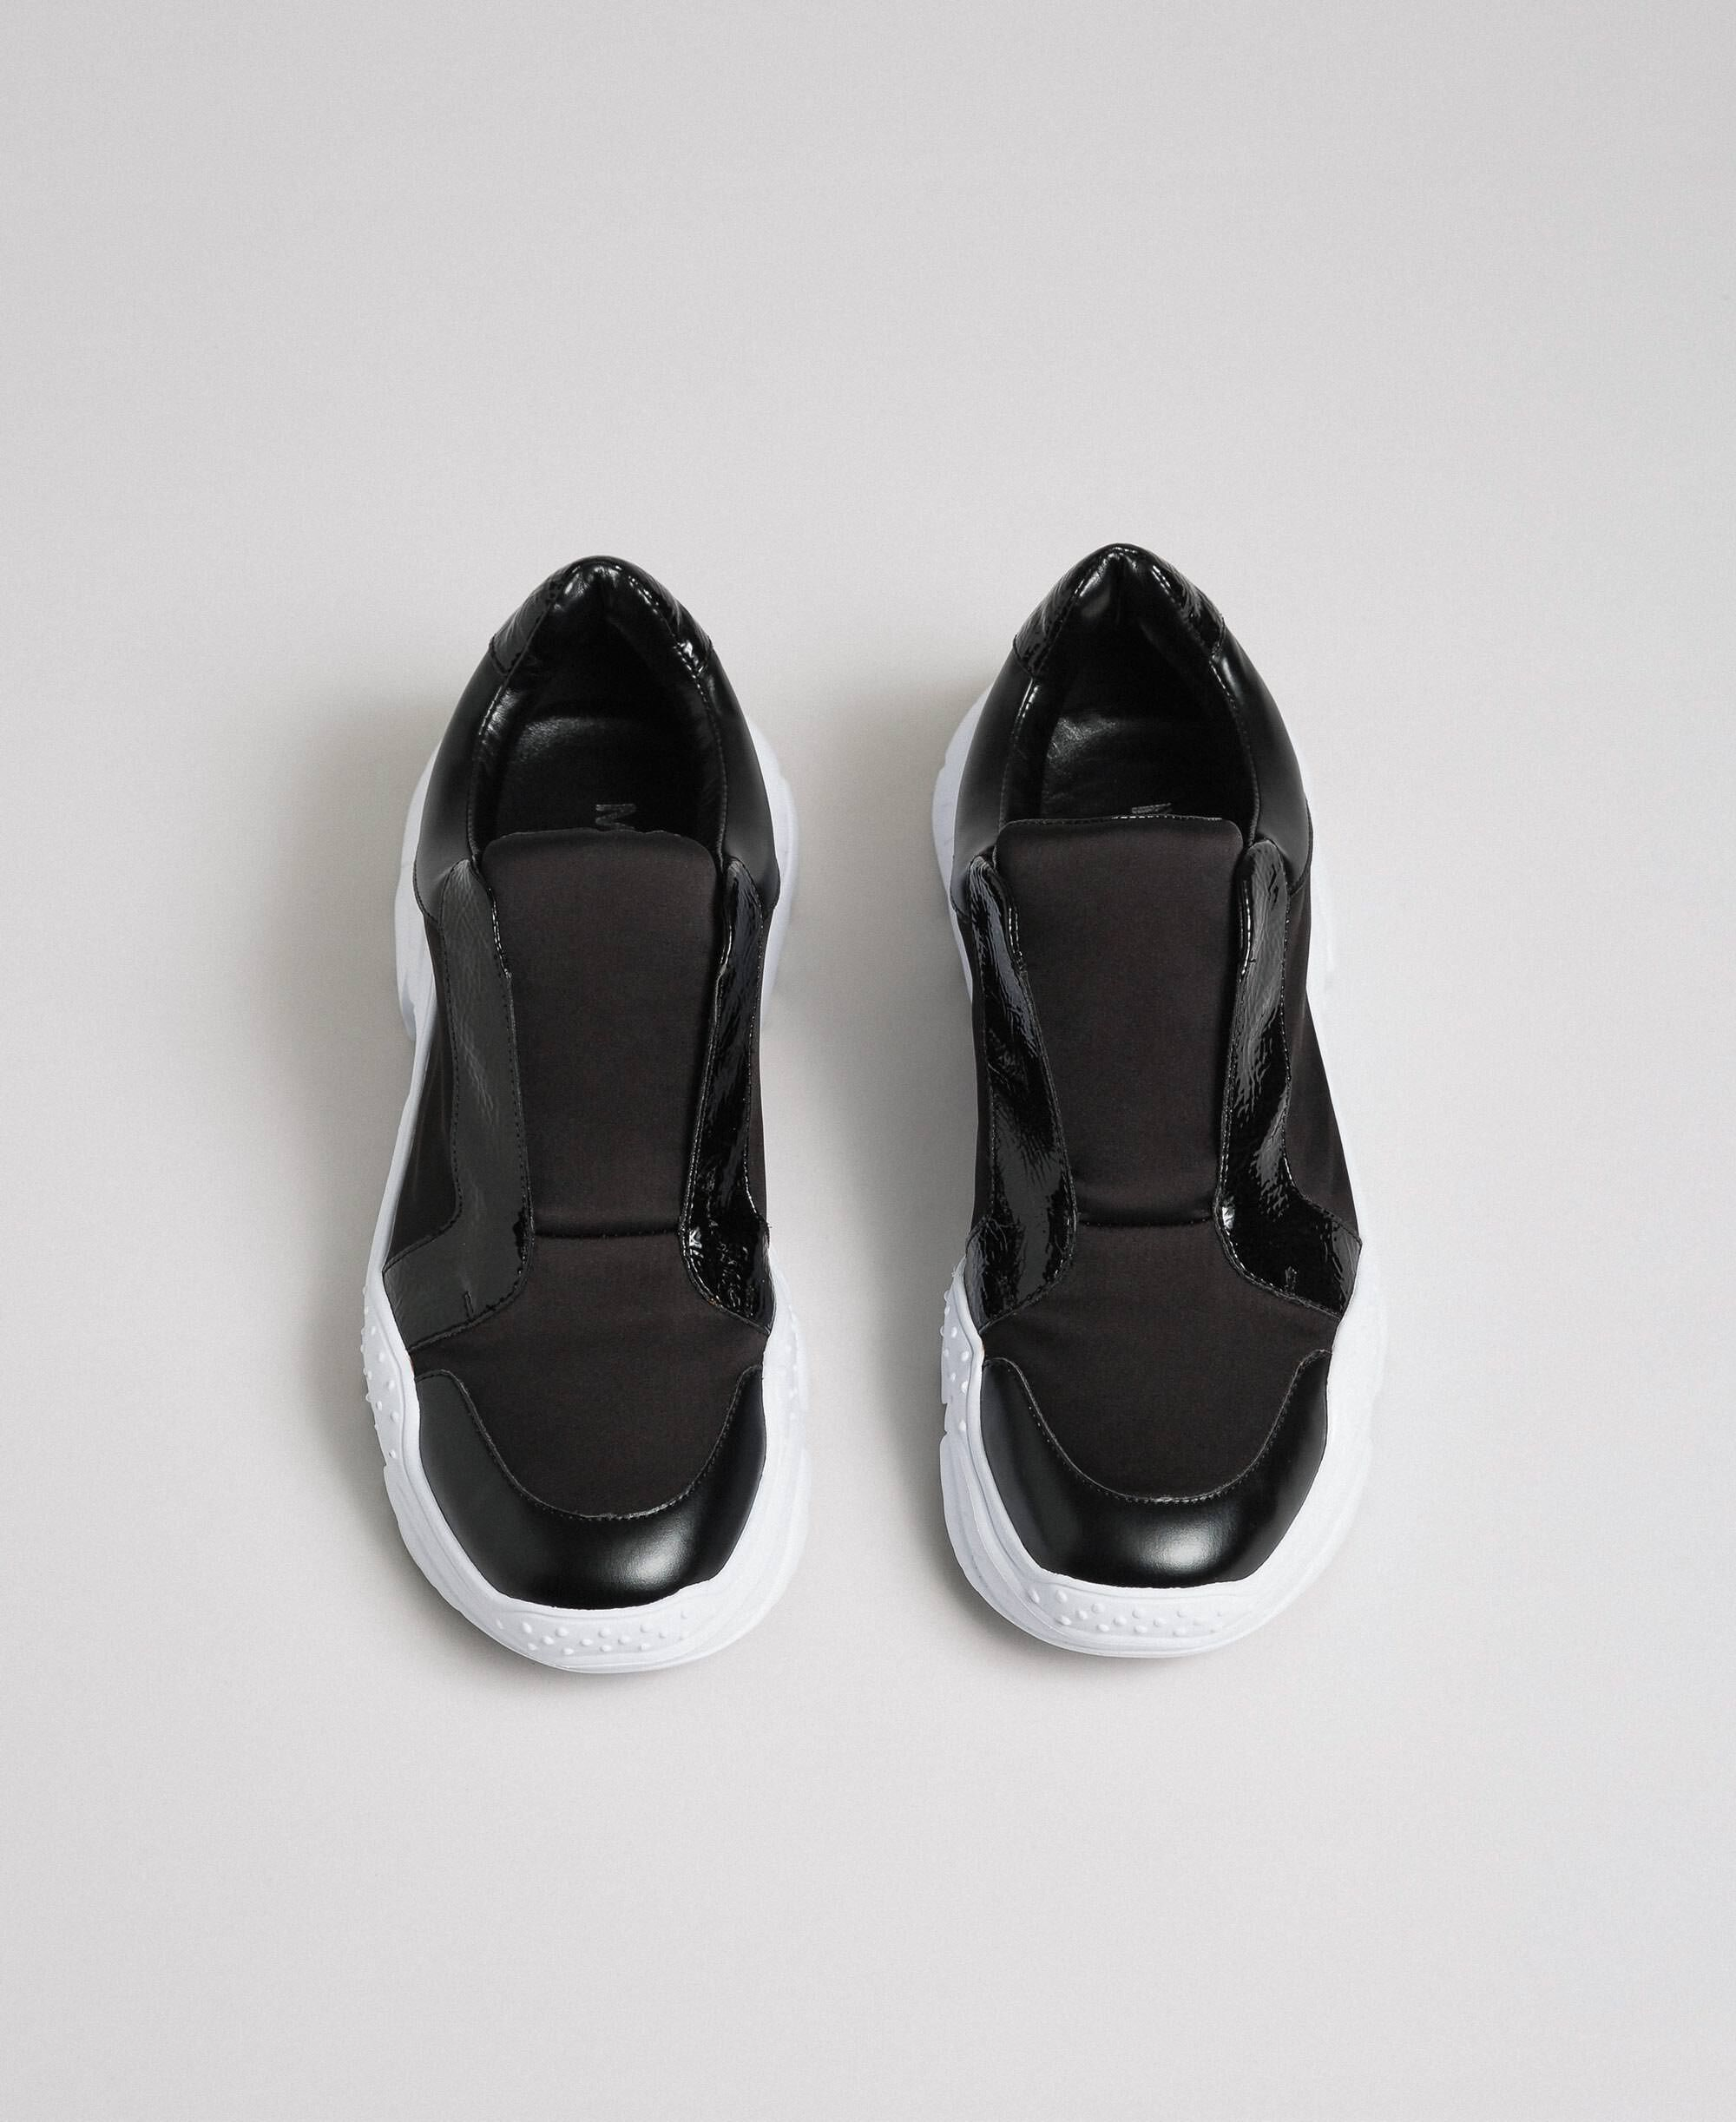 Faux leather running shoes with no